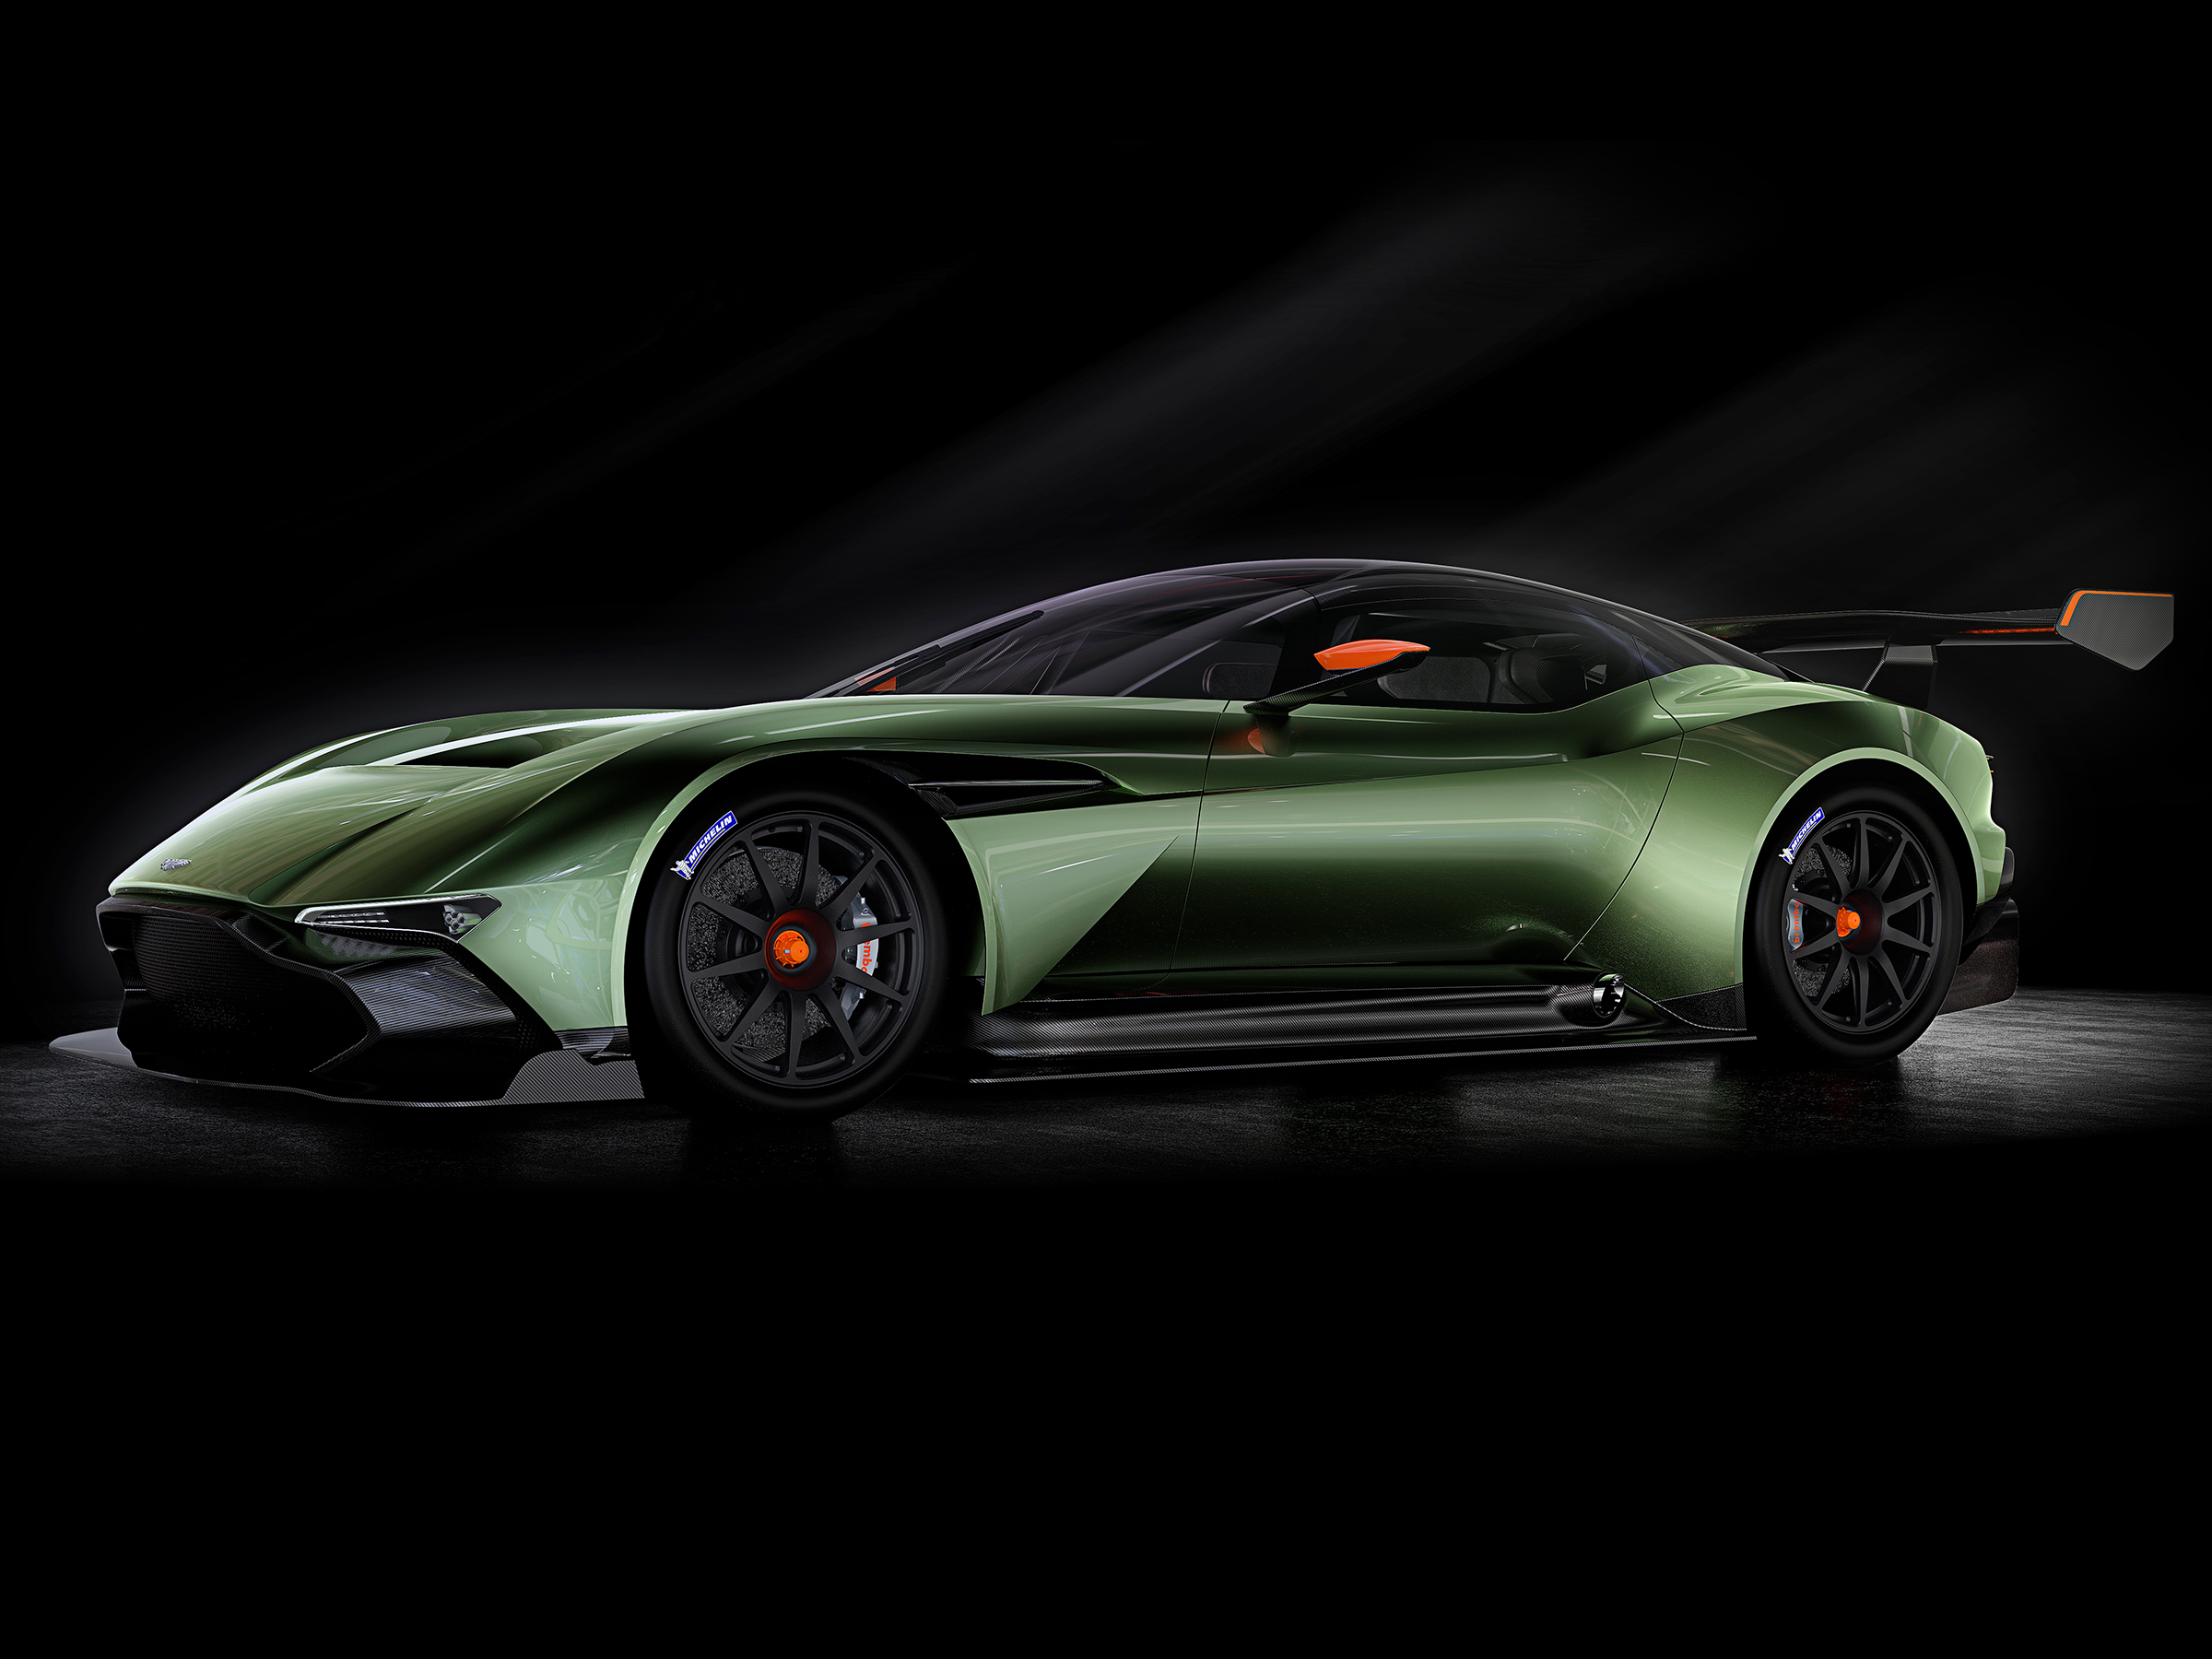 Aston Martin Vulcan >> Aston Martin S New Vulcan Requires Training Before Buying